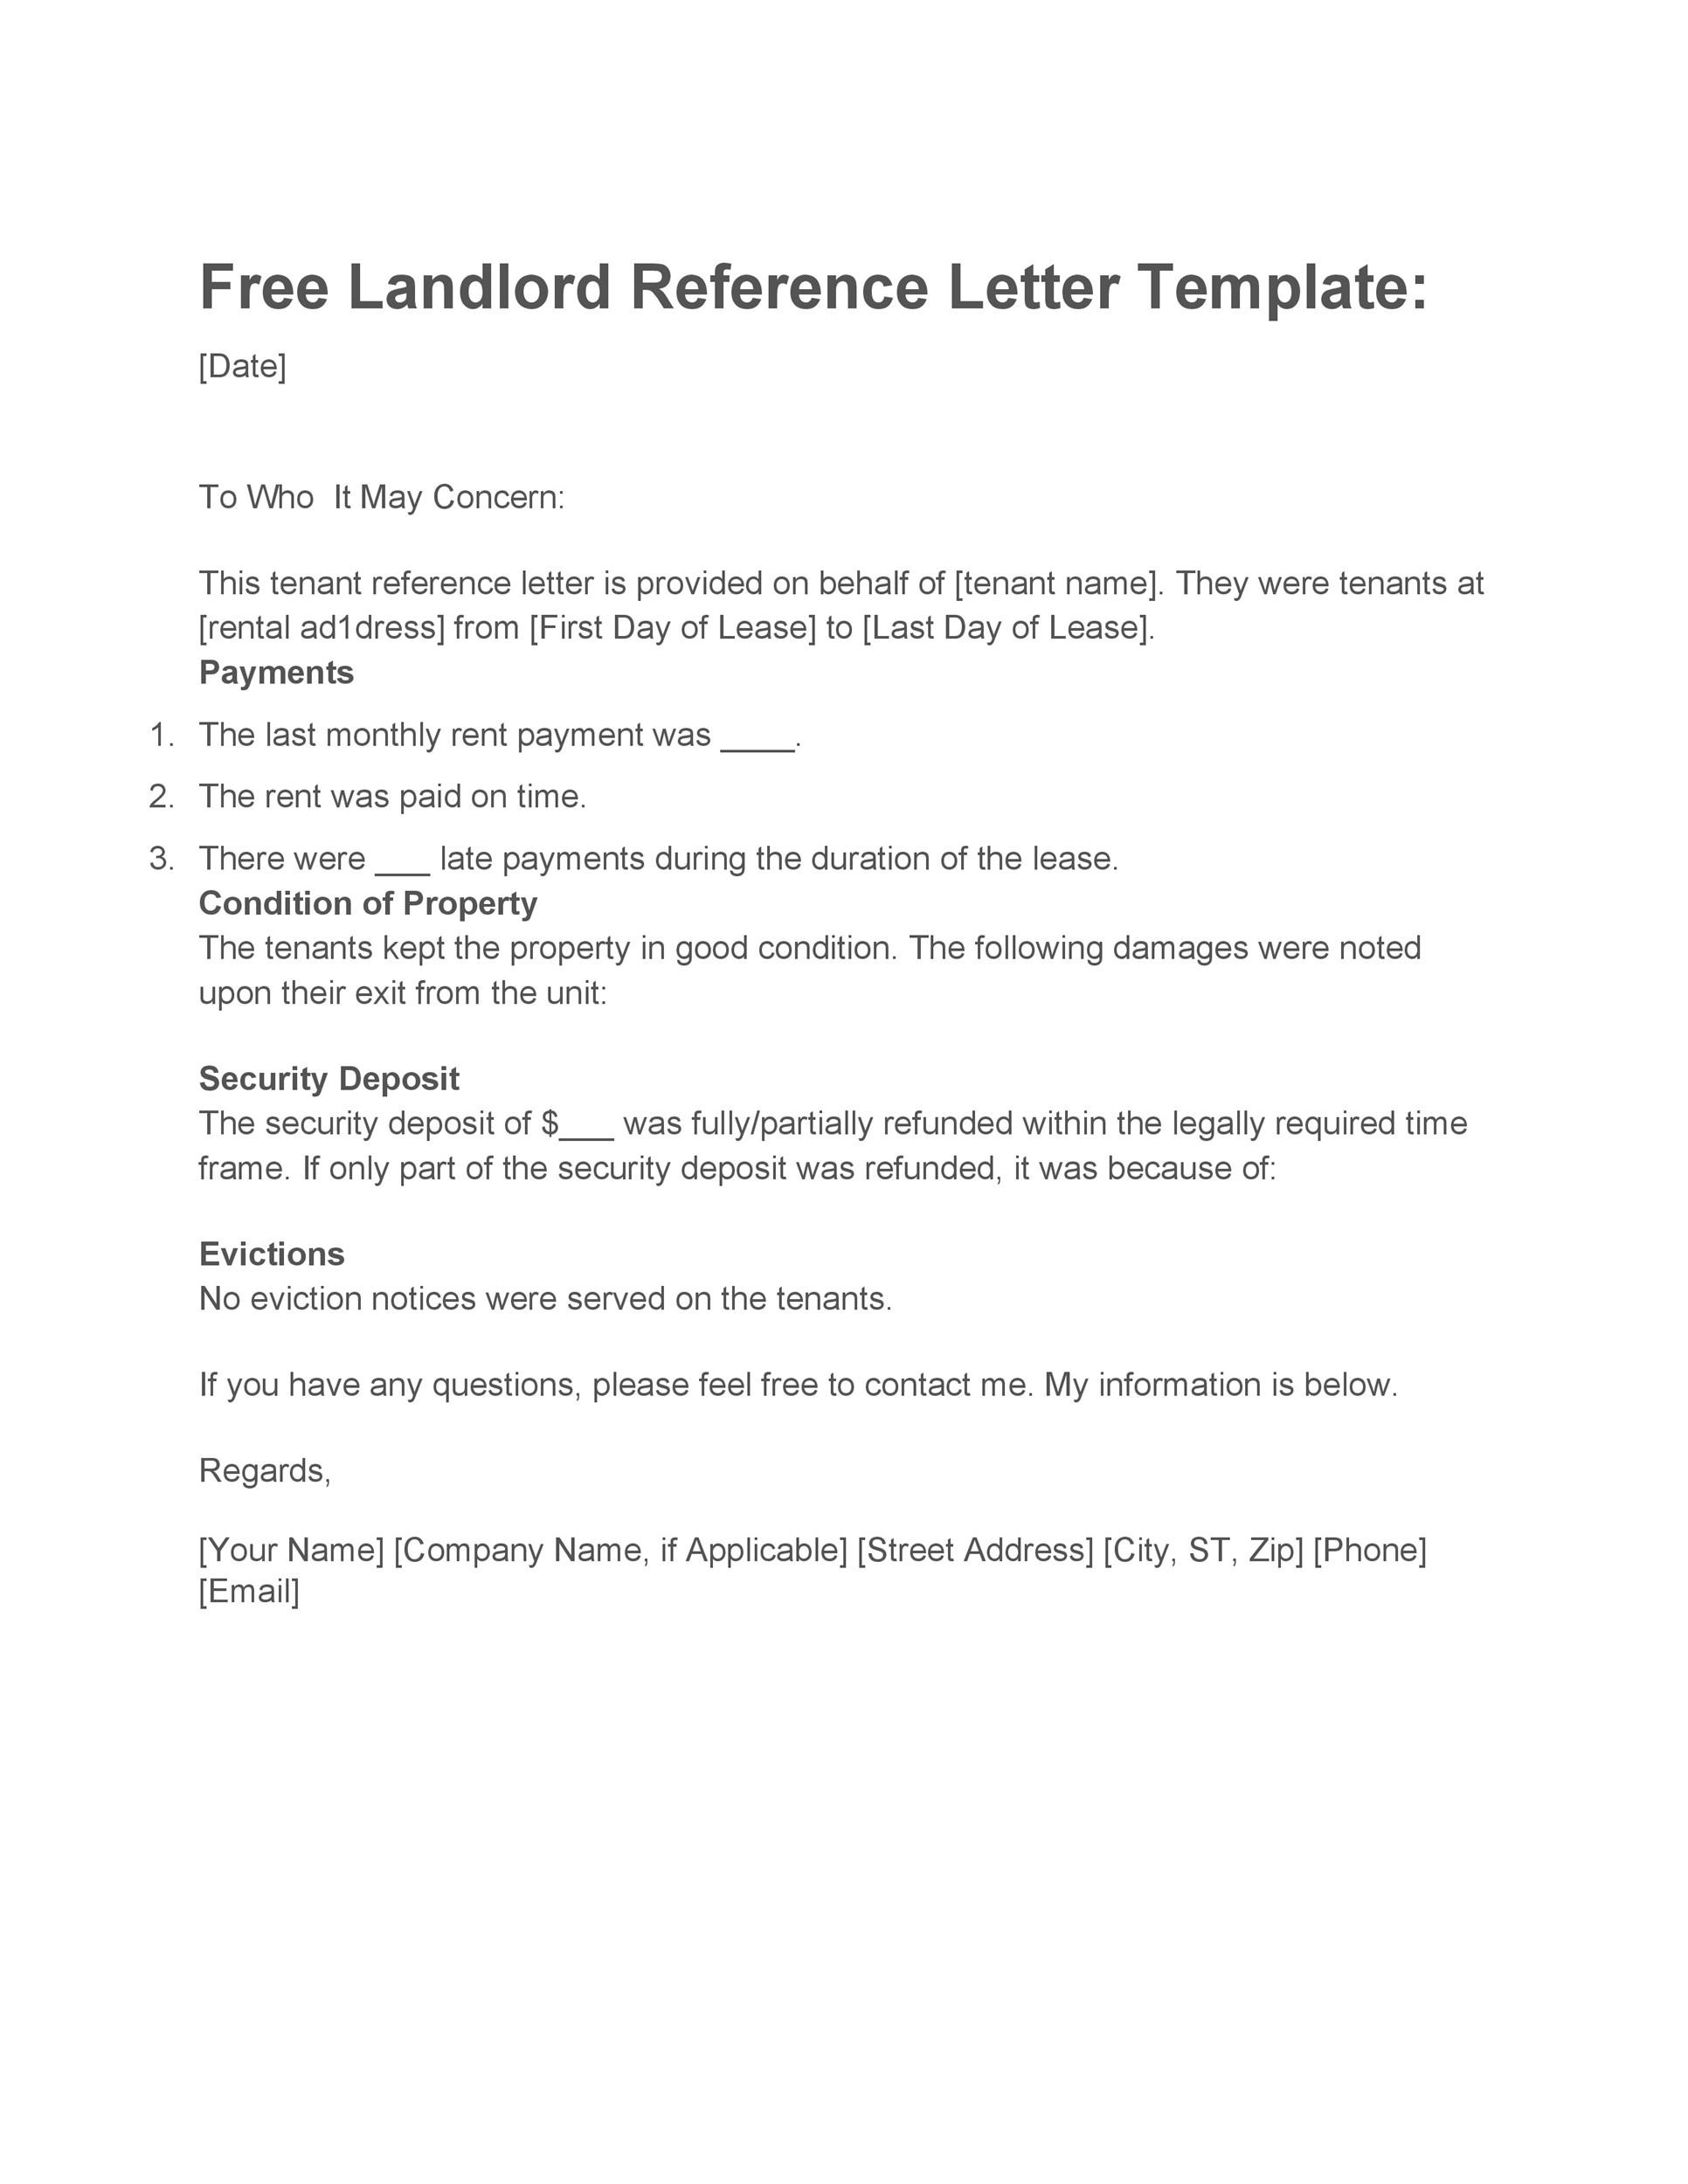 40 landlord reference letters form samples template lab. Black Bedroom Furniture Sets. Home Design Ideas